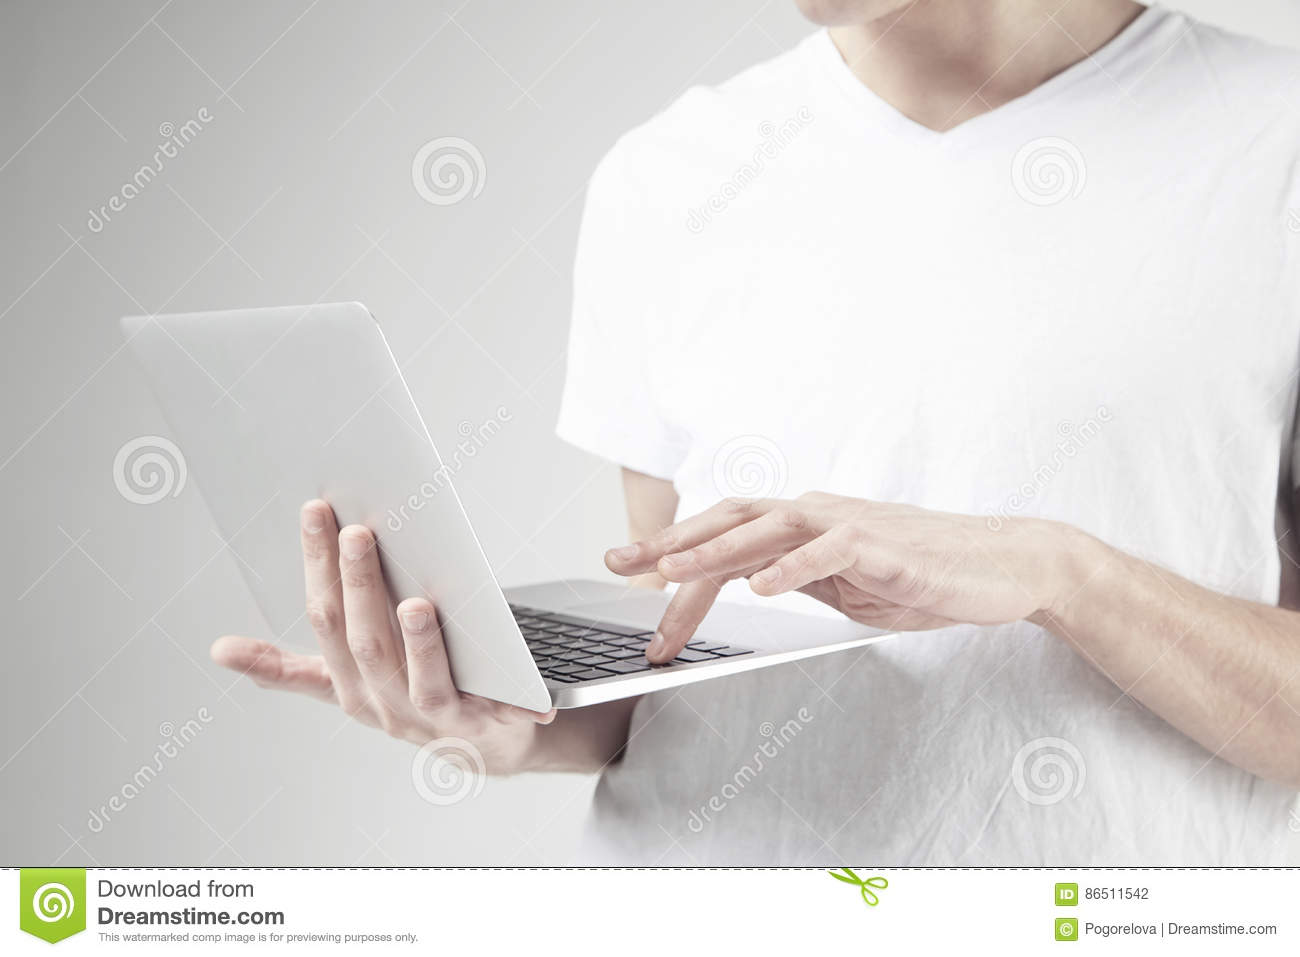 Close-up view of modern laptop in man`s hands, guy wearing white t-shirt, working on portable computer. White background in studio